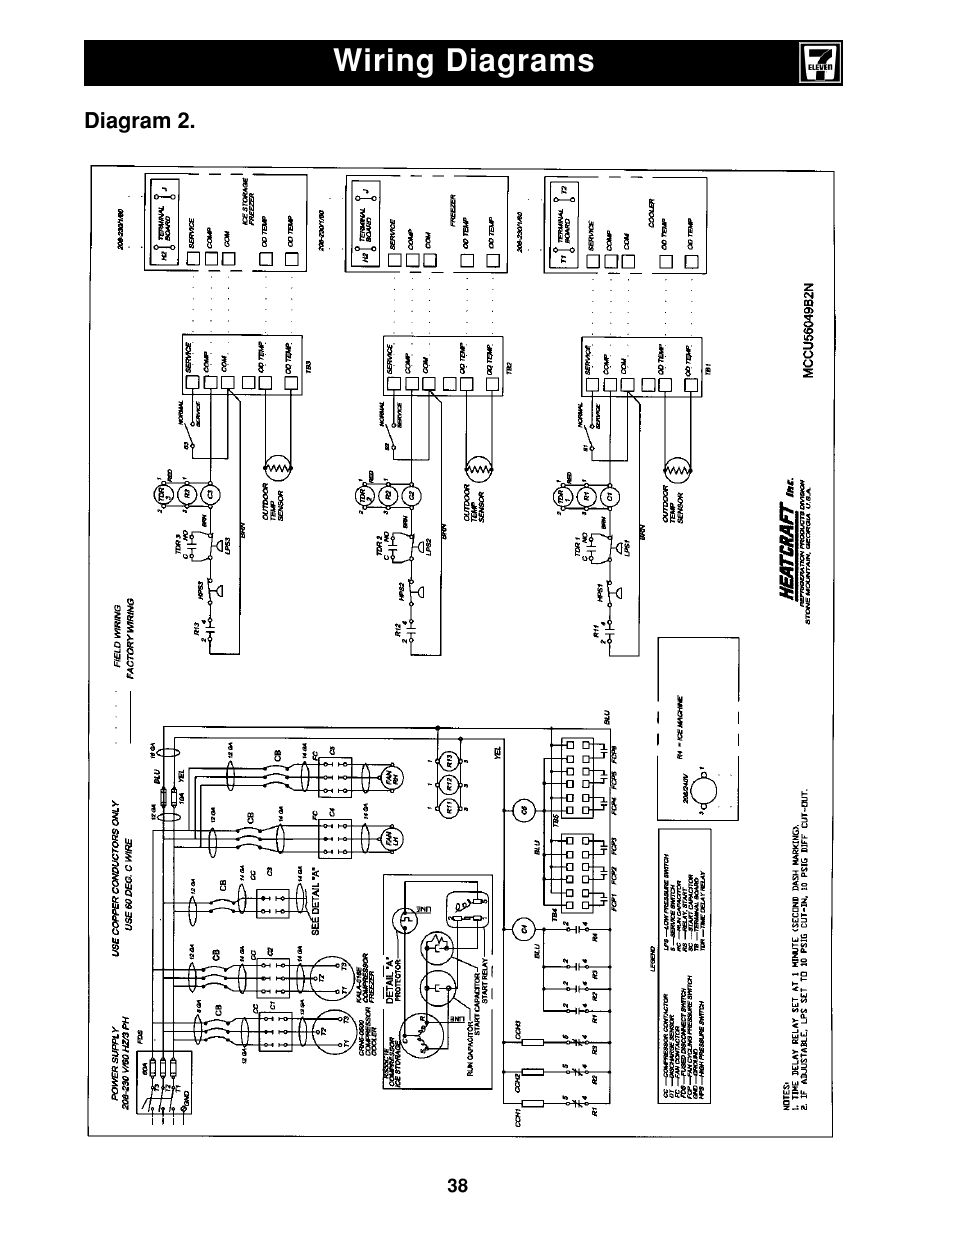 Wiring diagrams | Heatcraft Refrigeration Products II User ... on